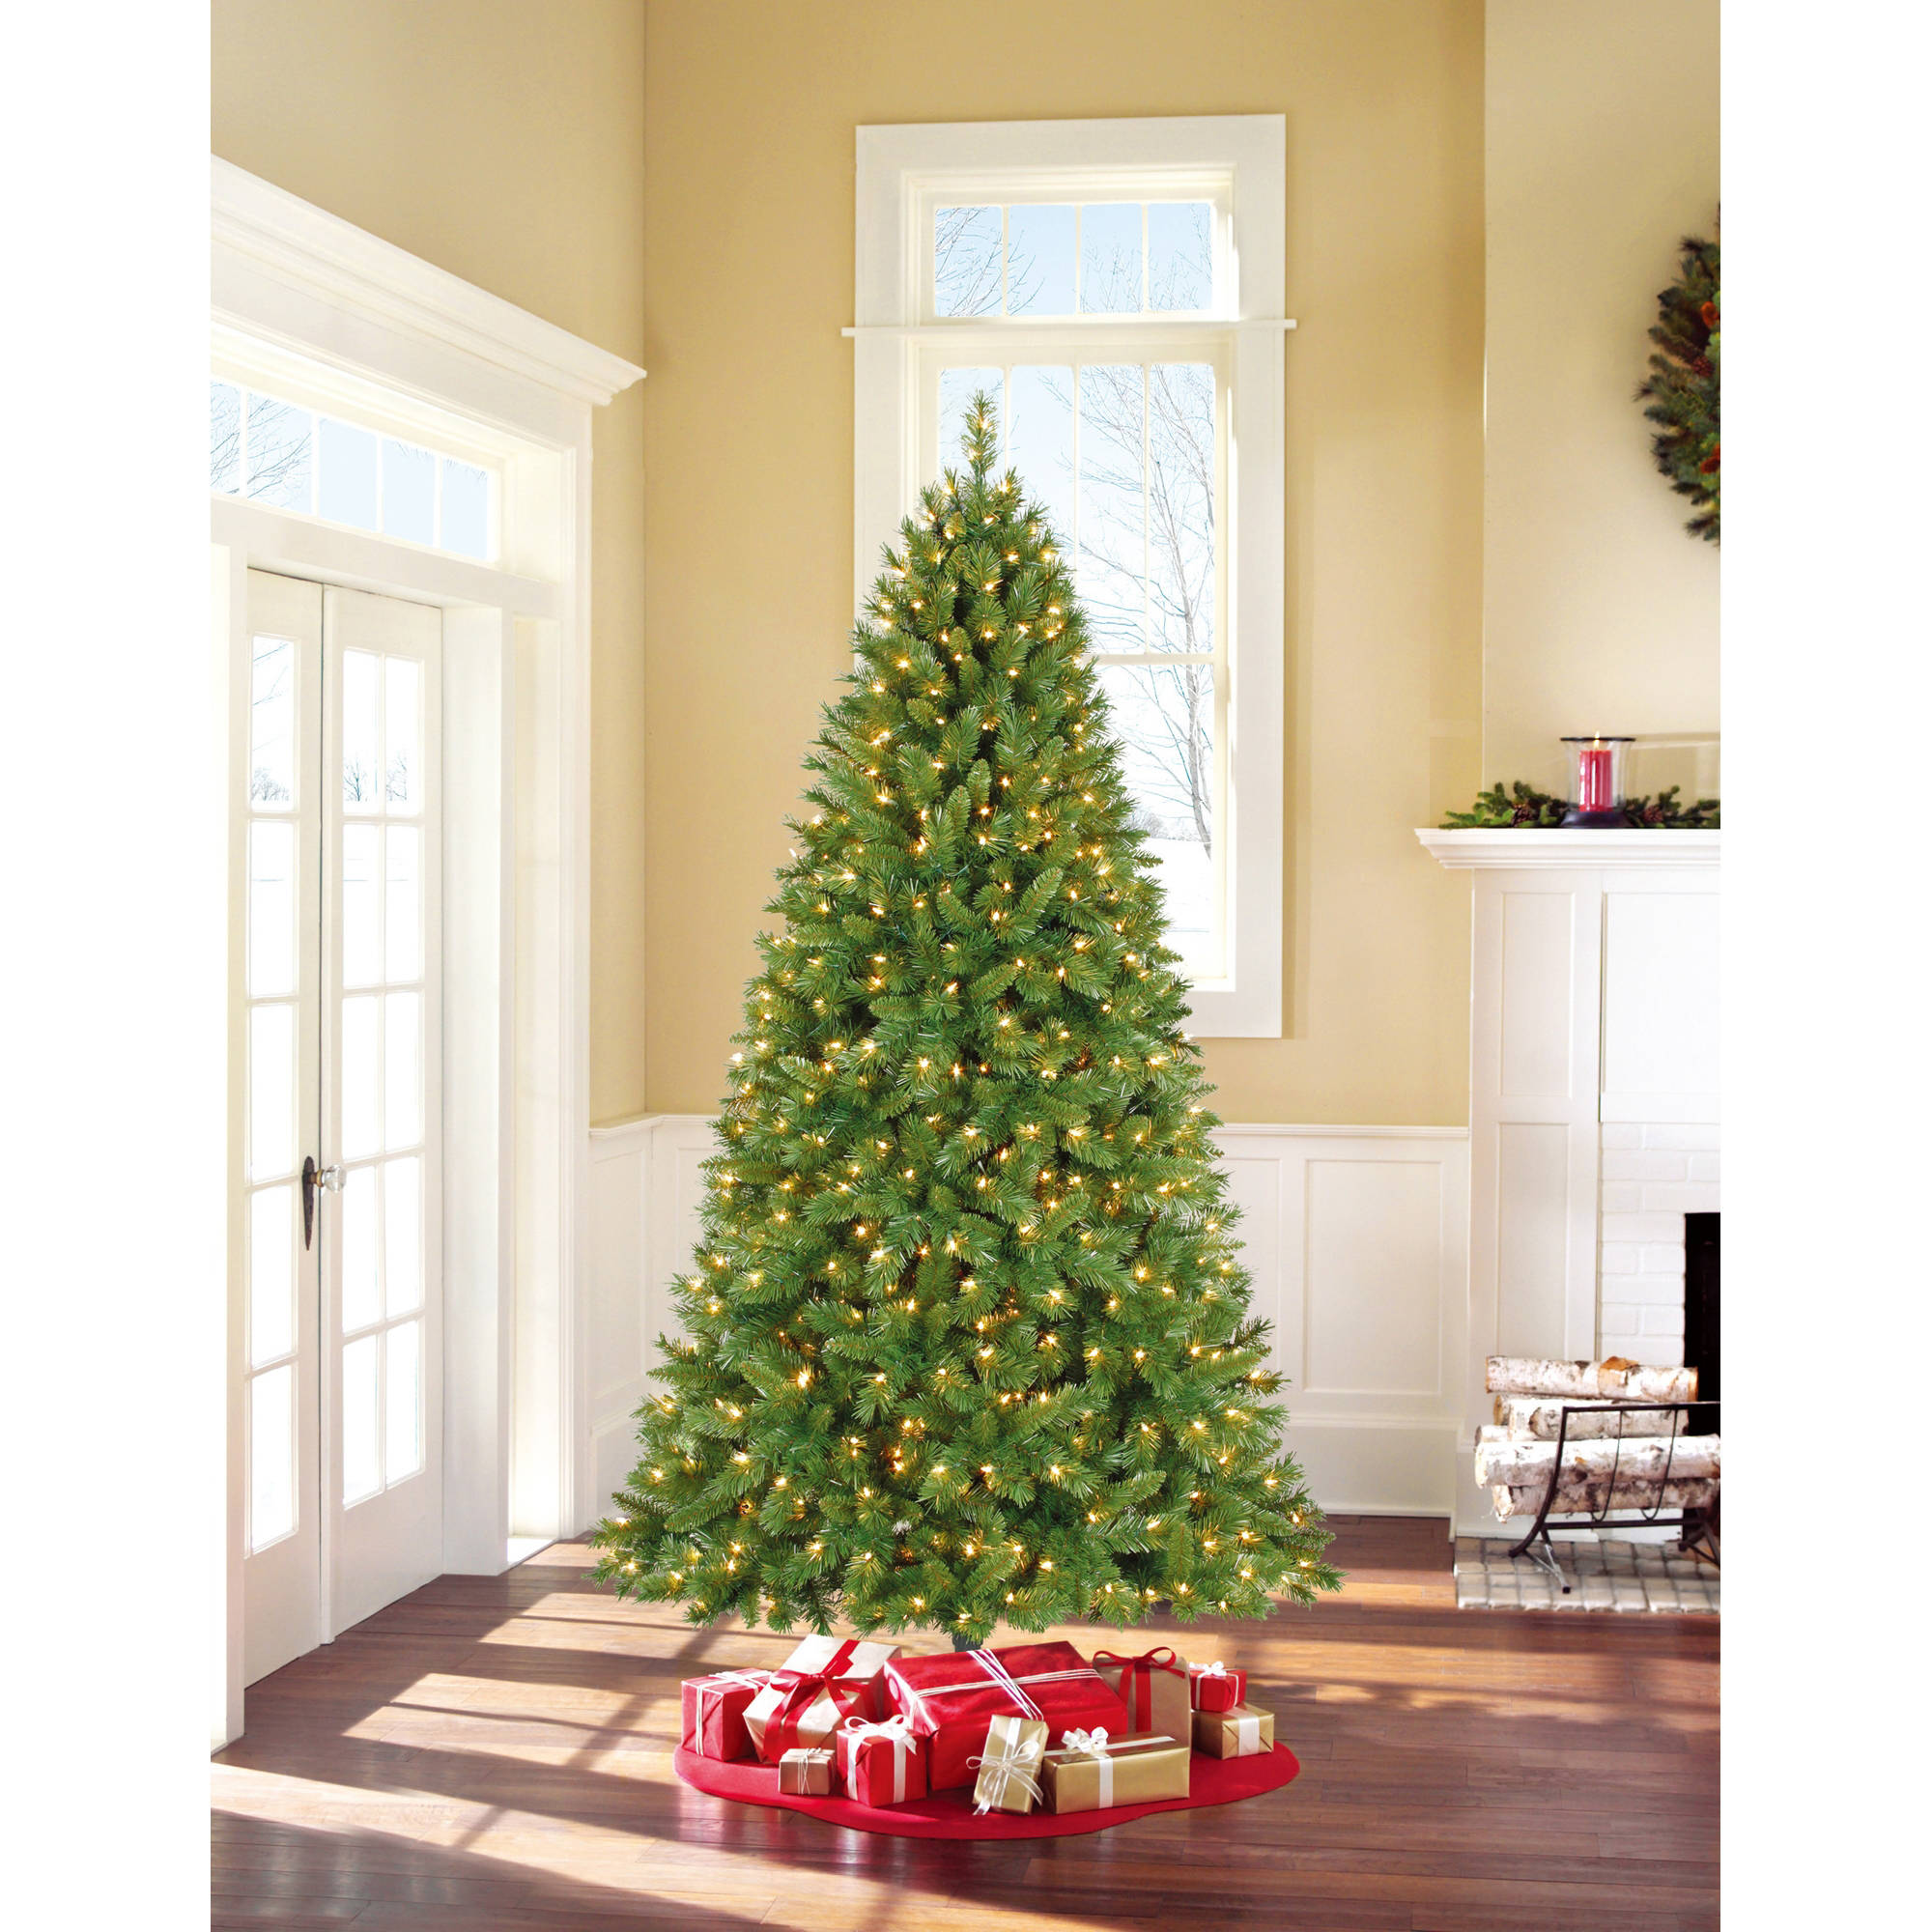 costway 8 ft pre lit artificial christmas tree w450 led lights stand holiday season walmartcom - Artificial Christmas Trees